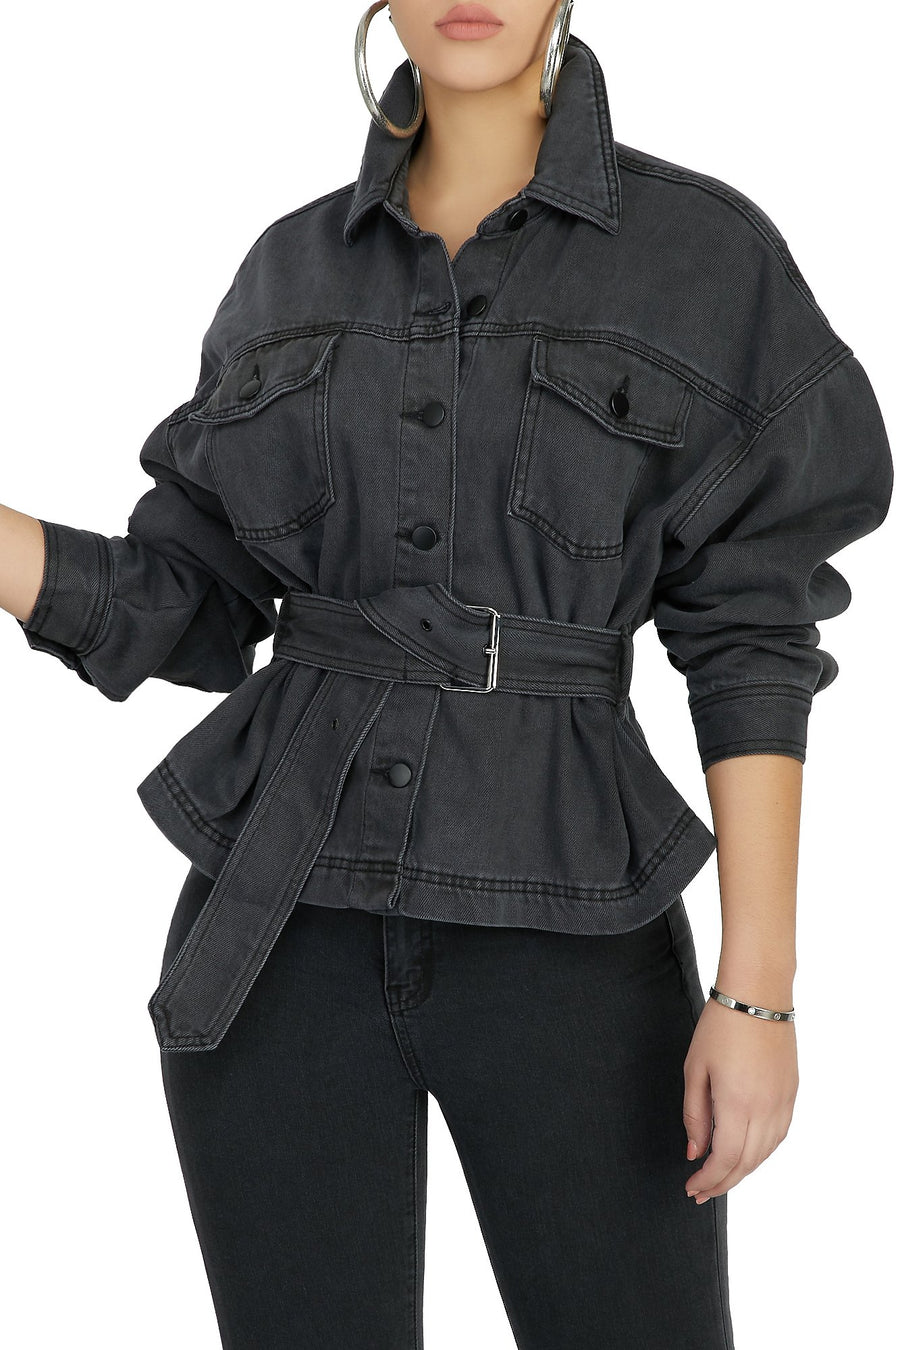 A Session In Style Denim Jacket (Charcoal)